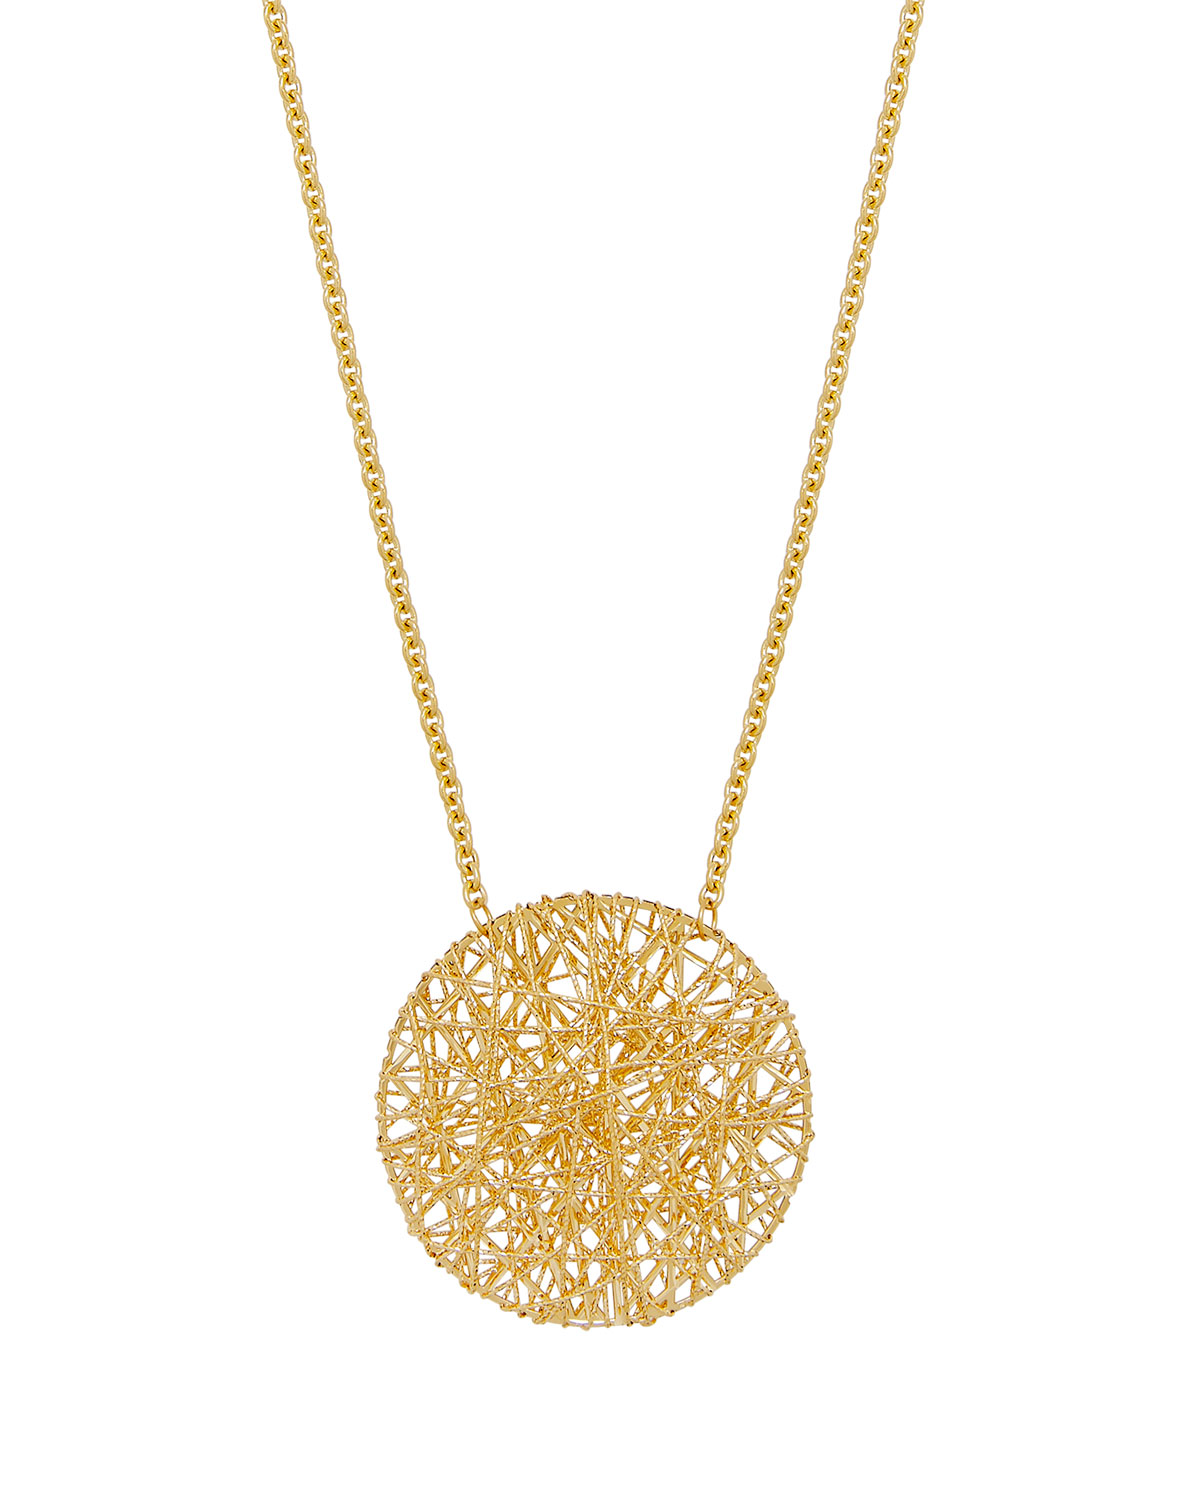 Piazza Duomo Mesh Disc Pendant Necklace in 18K Gold